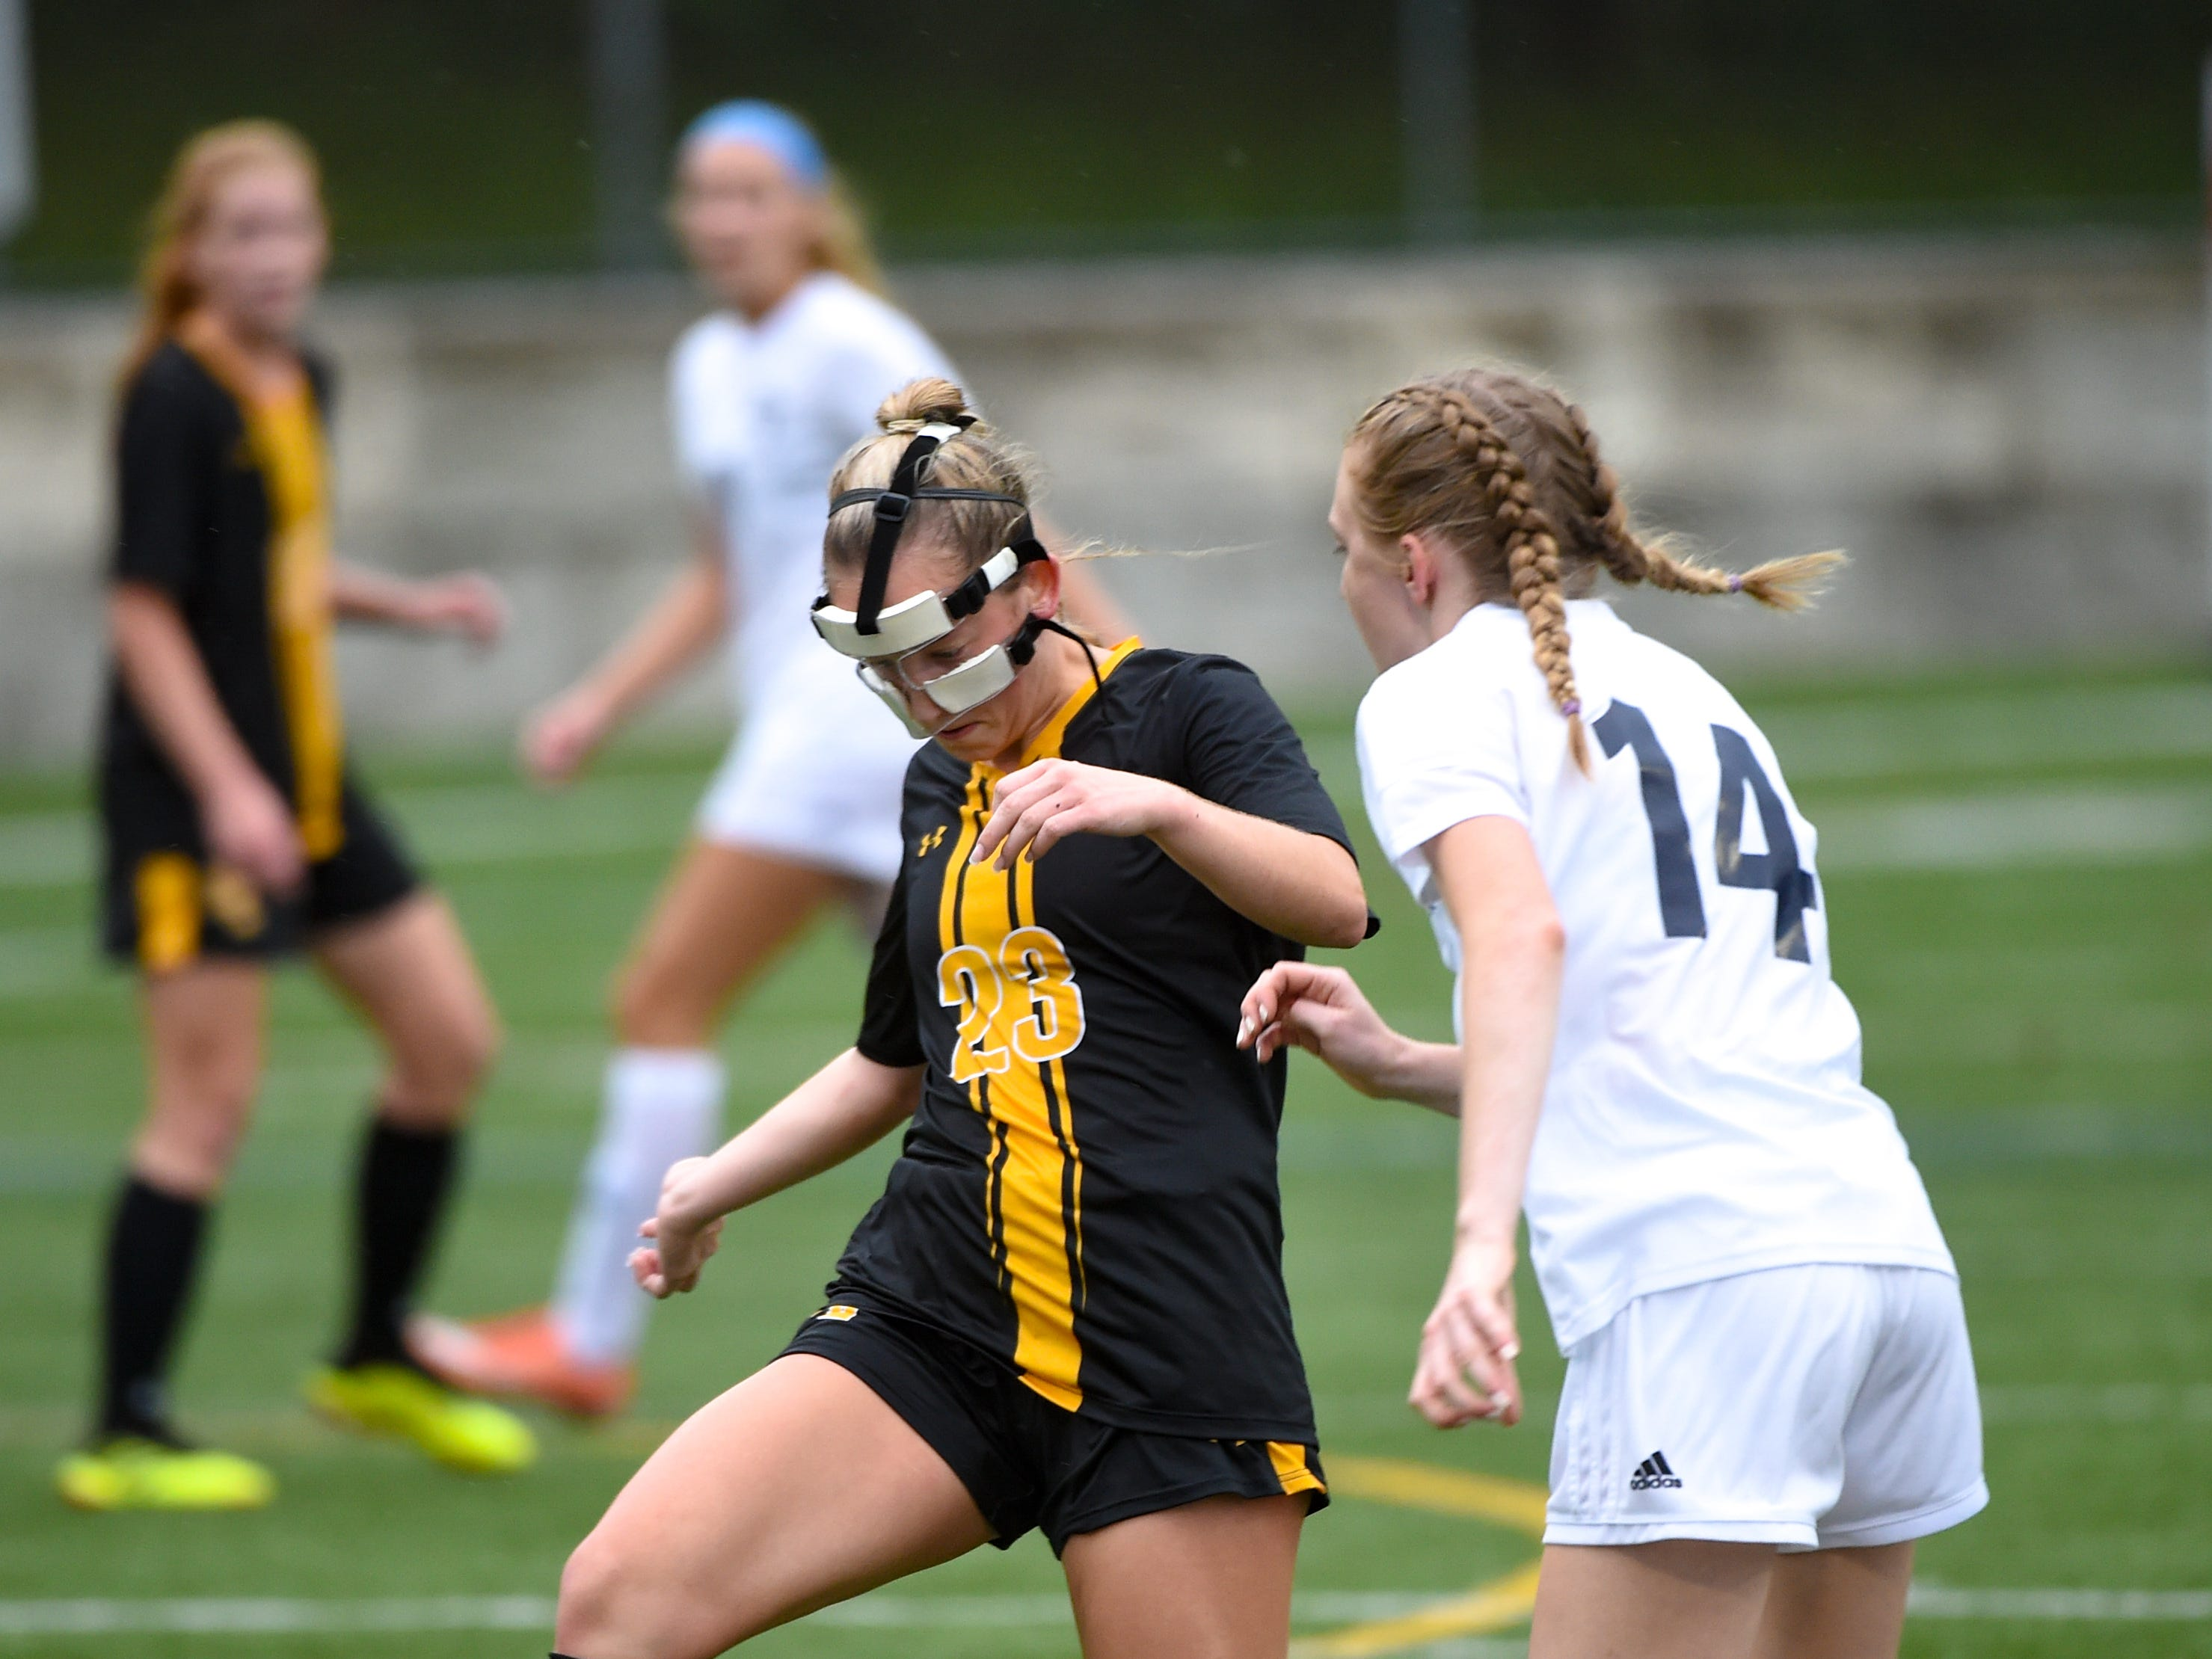 YAIAA tournaments: Find out matchups, locations and start times